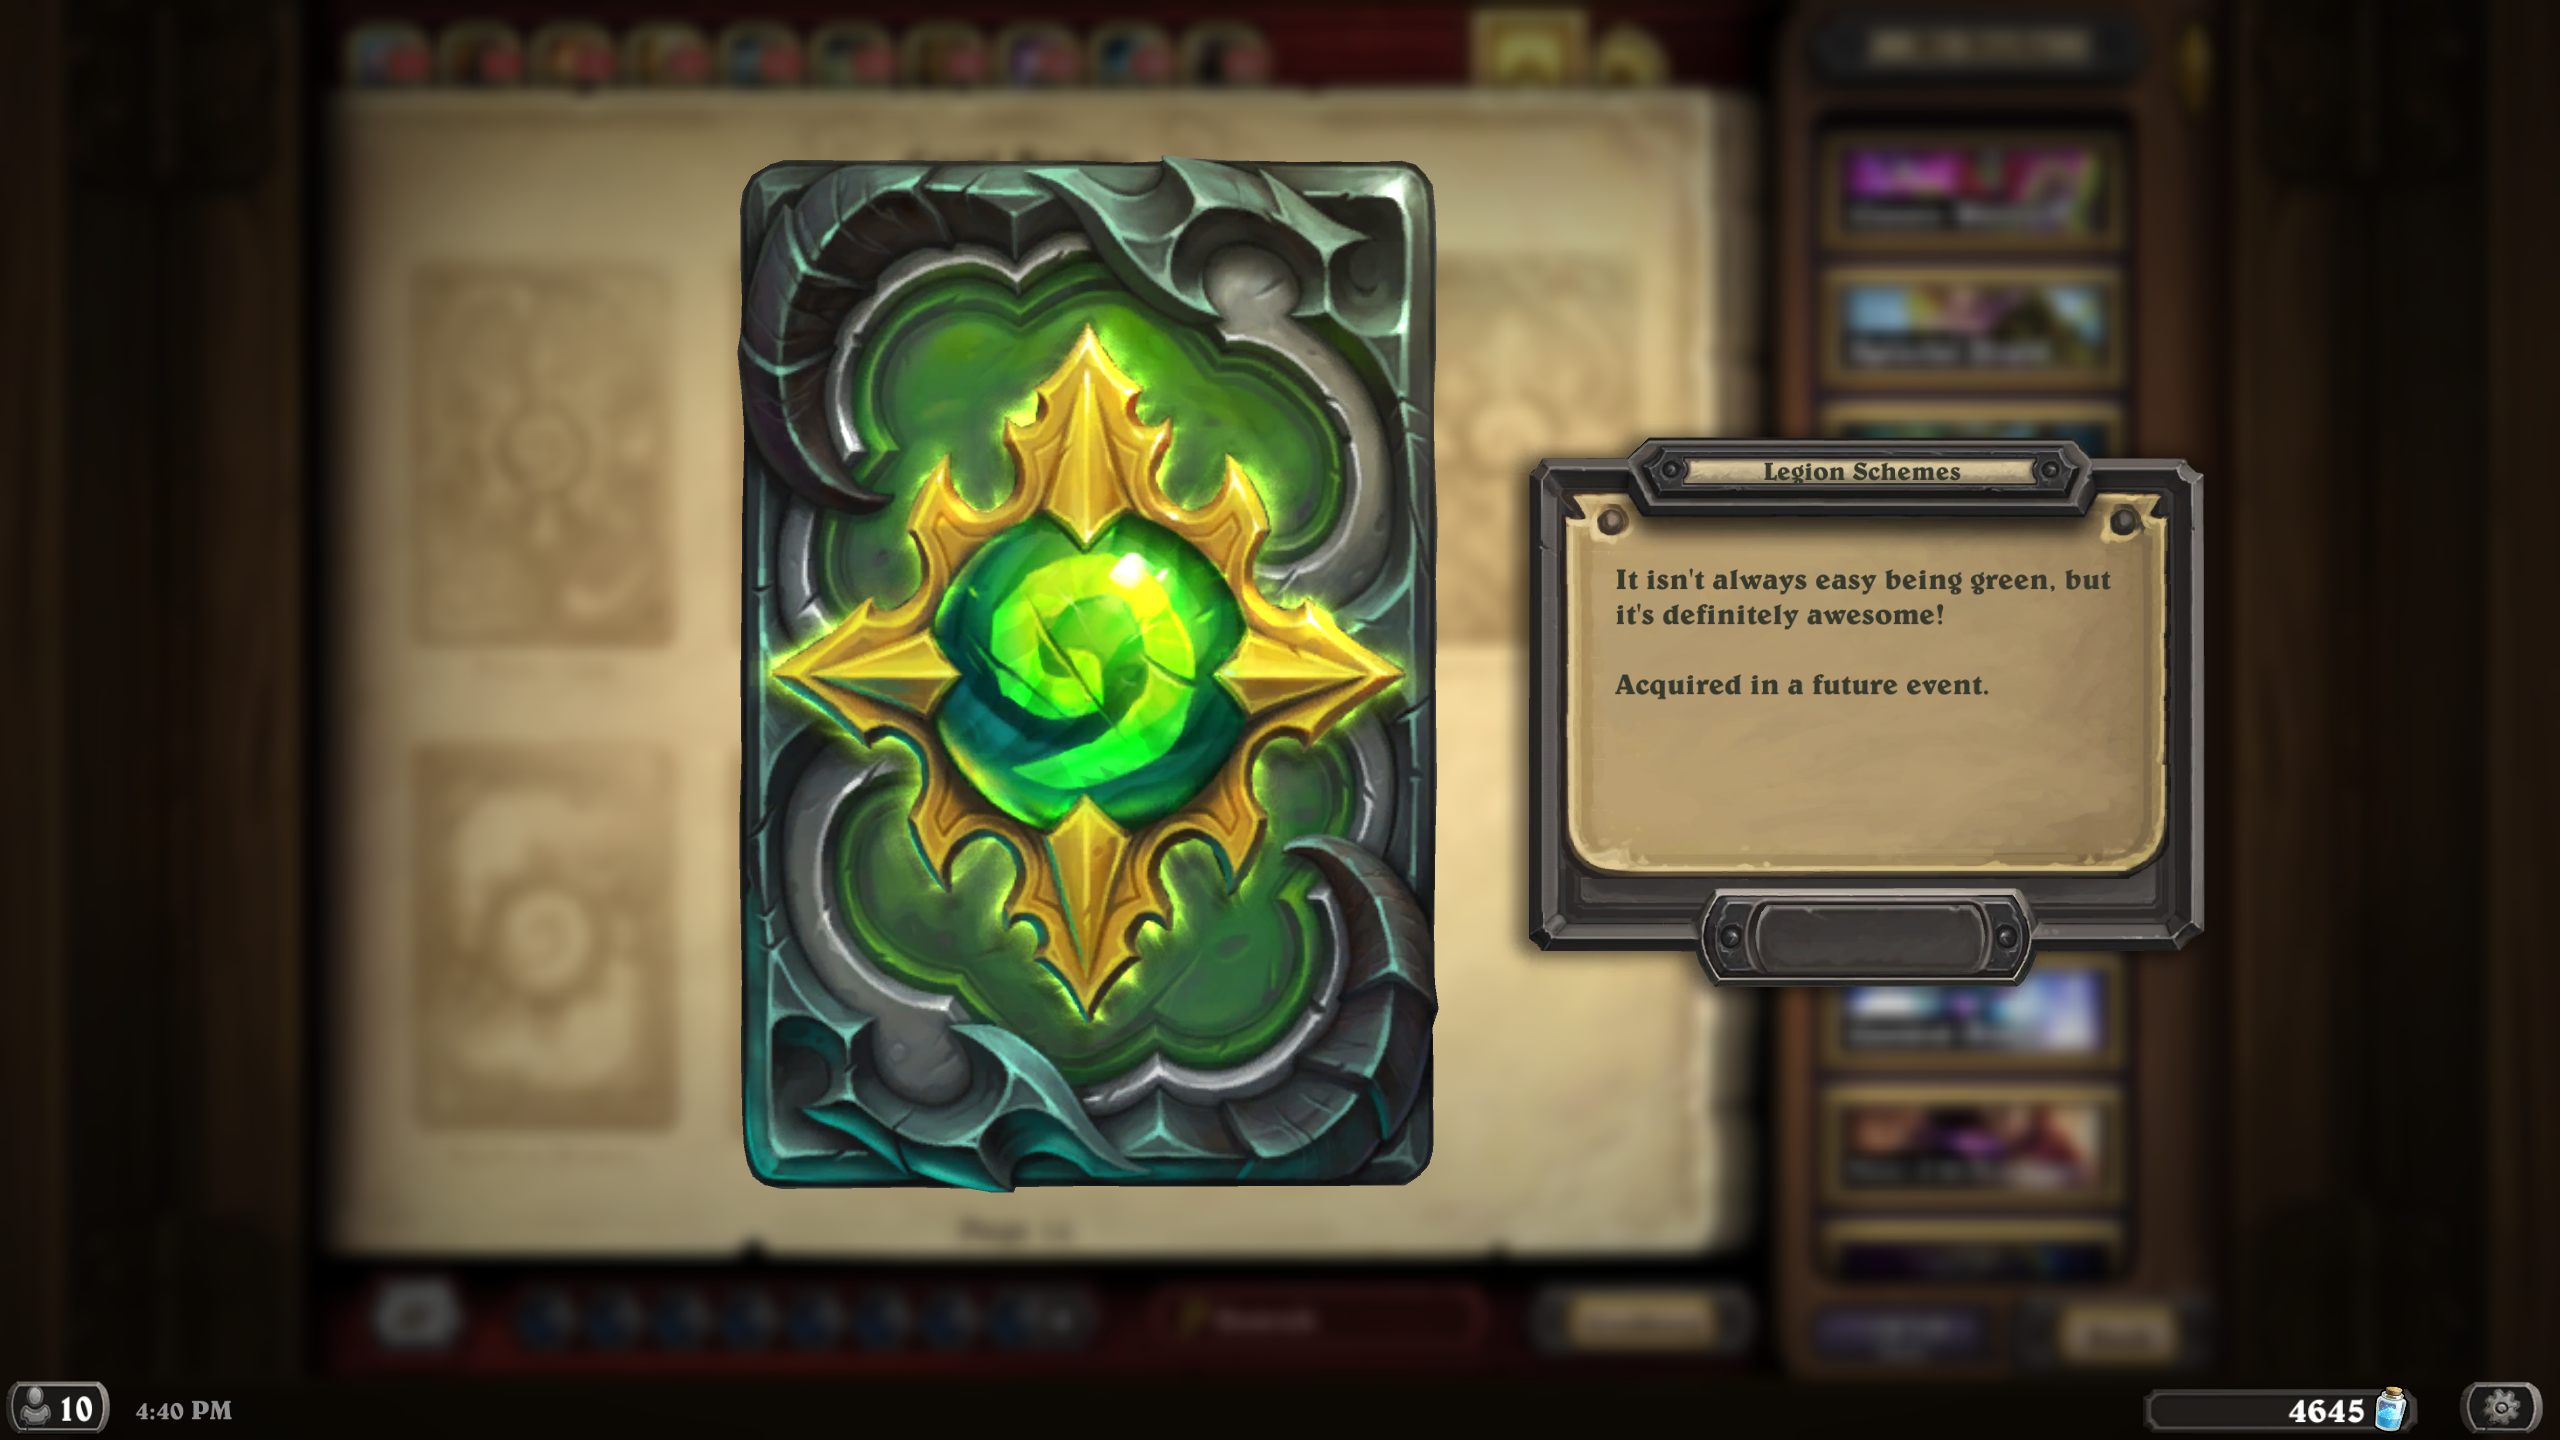 Hearthstone Patch - Card Nerfs, Lunar New Year Event, Card Backs